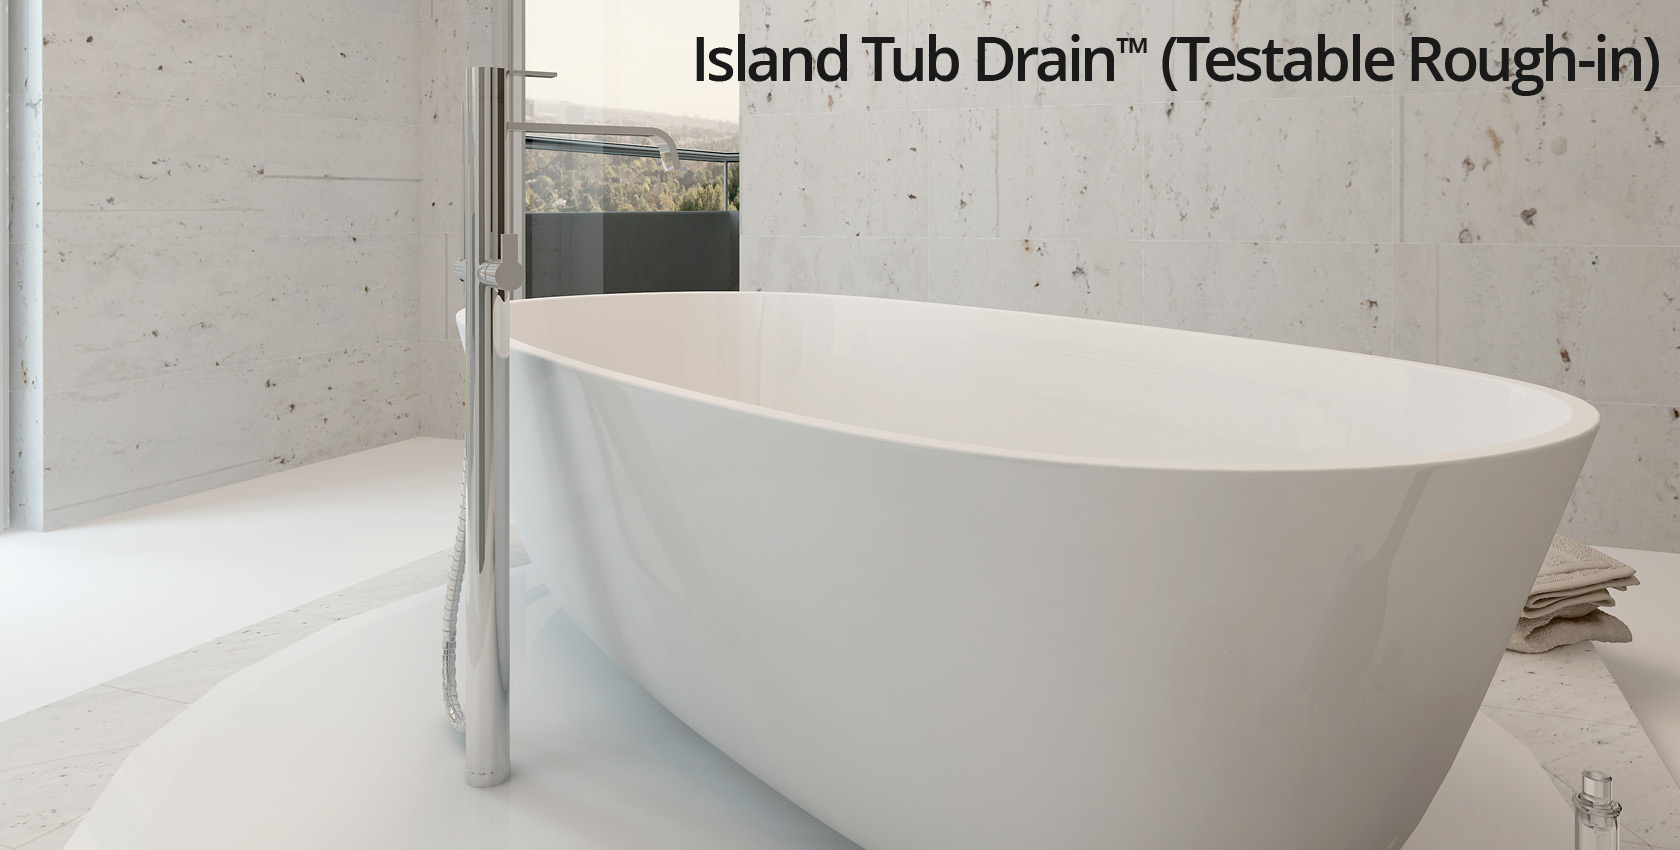 Island tub drain testable rough in